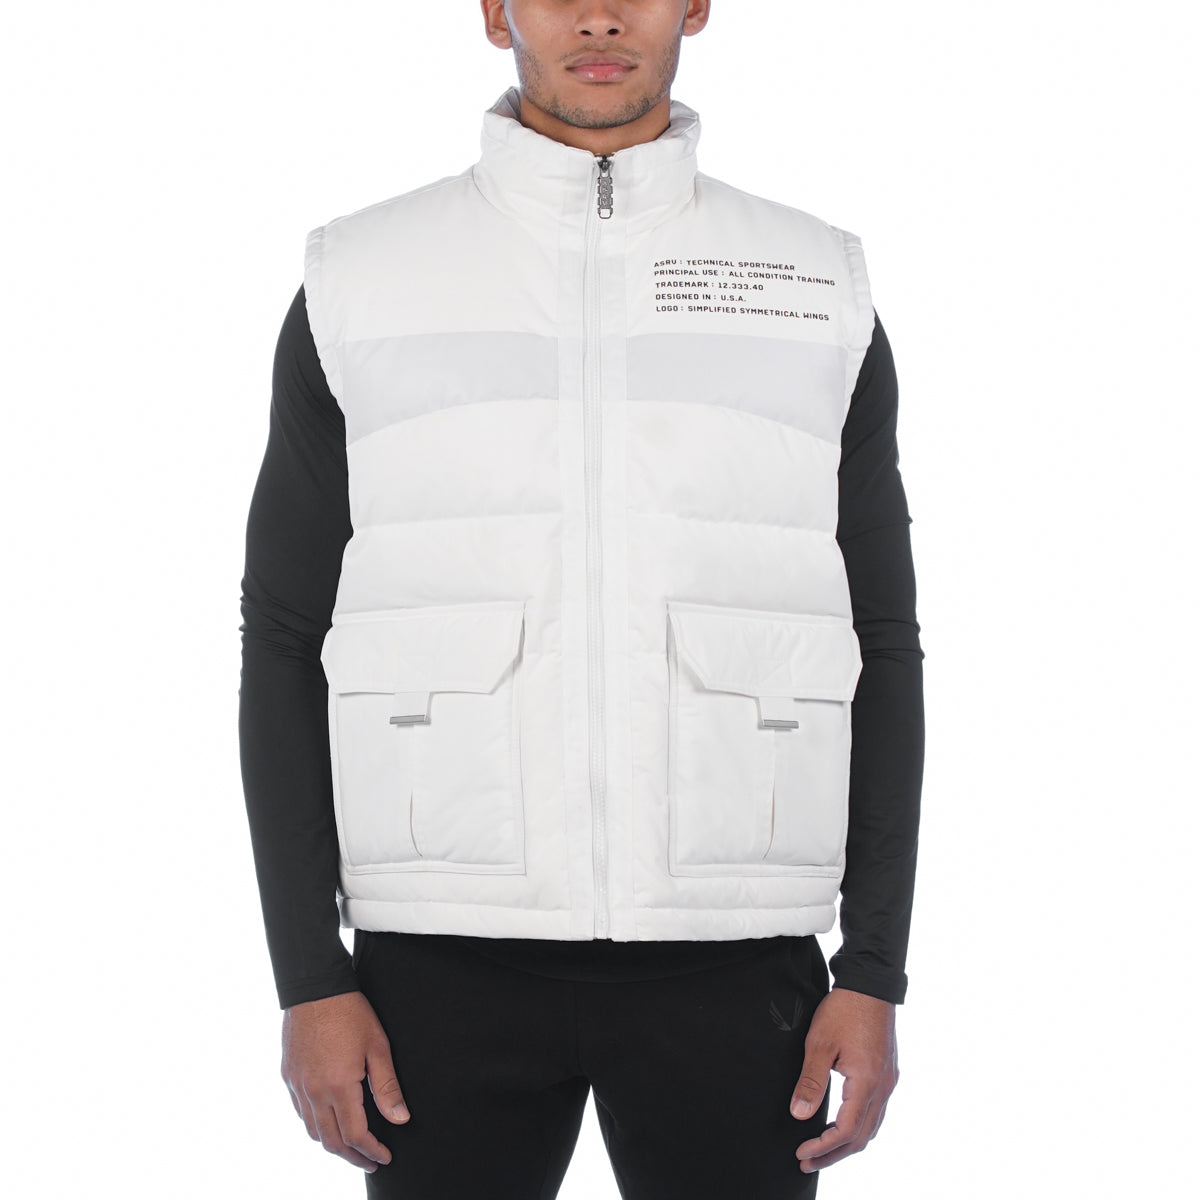 0263. Hipora® Waterproof Down Vest - White